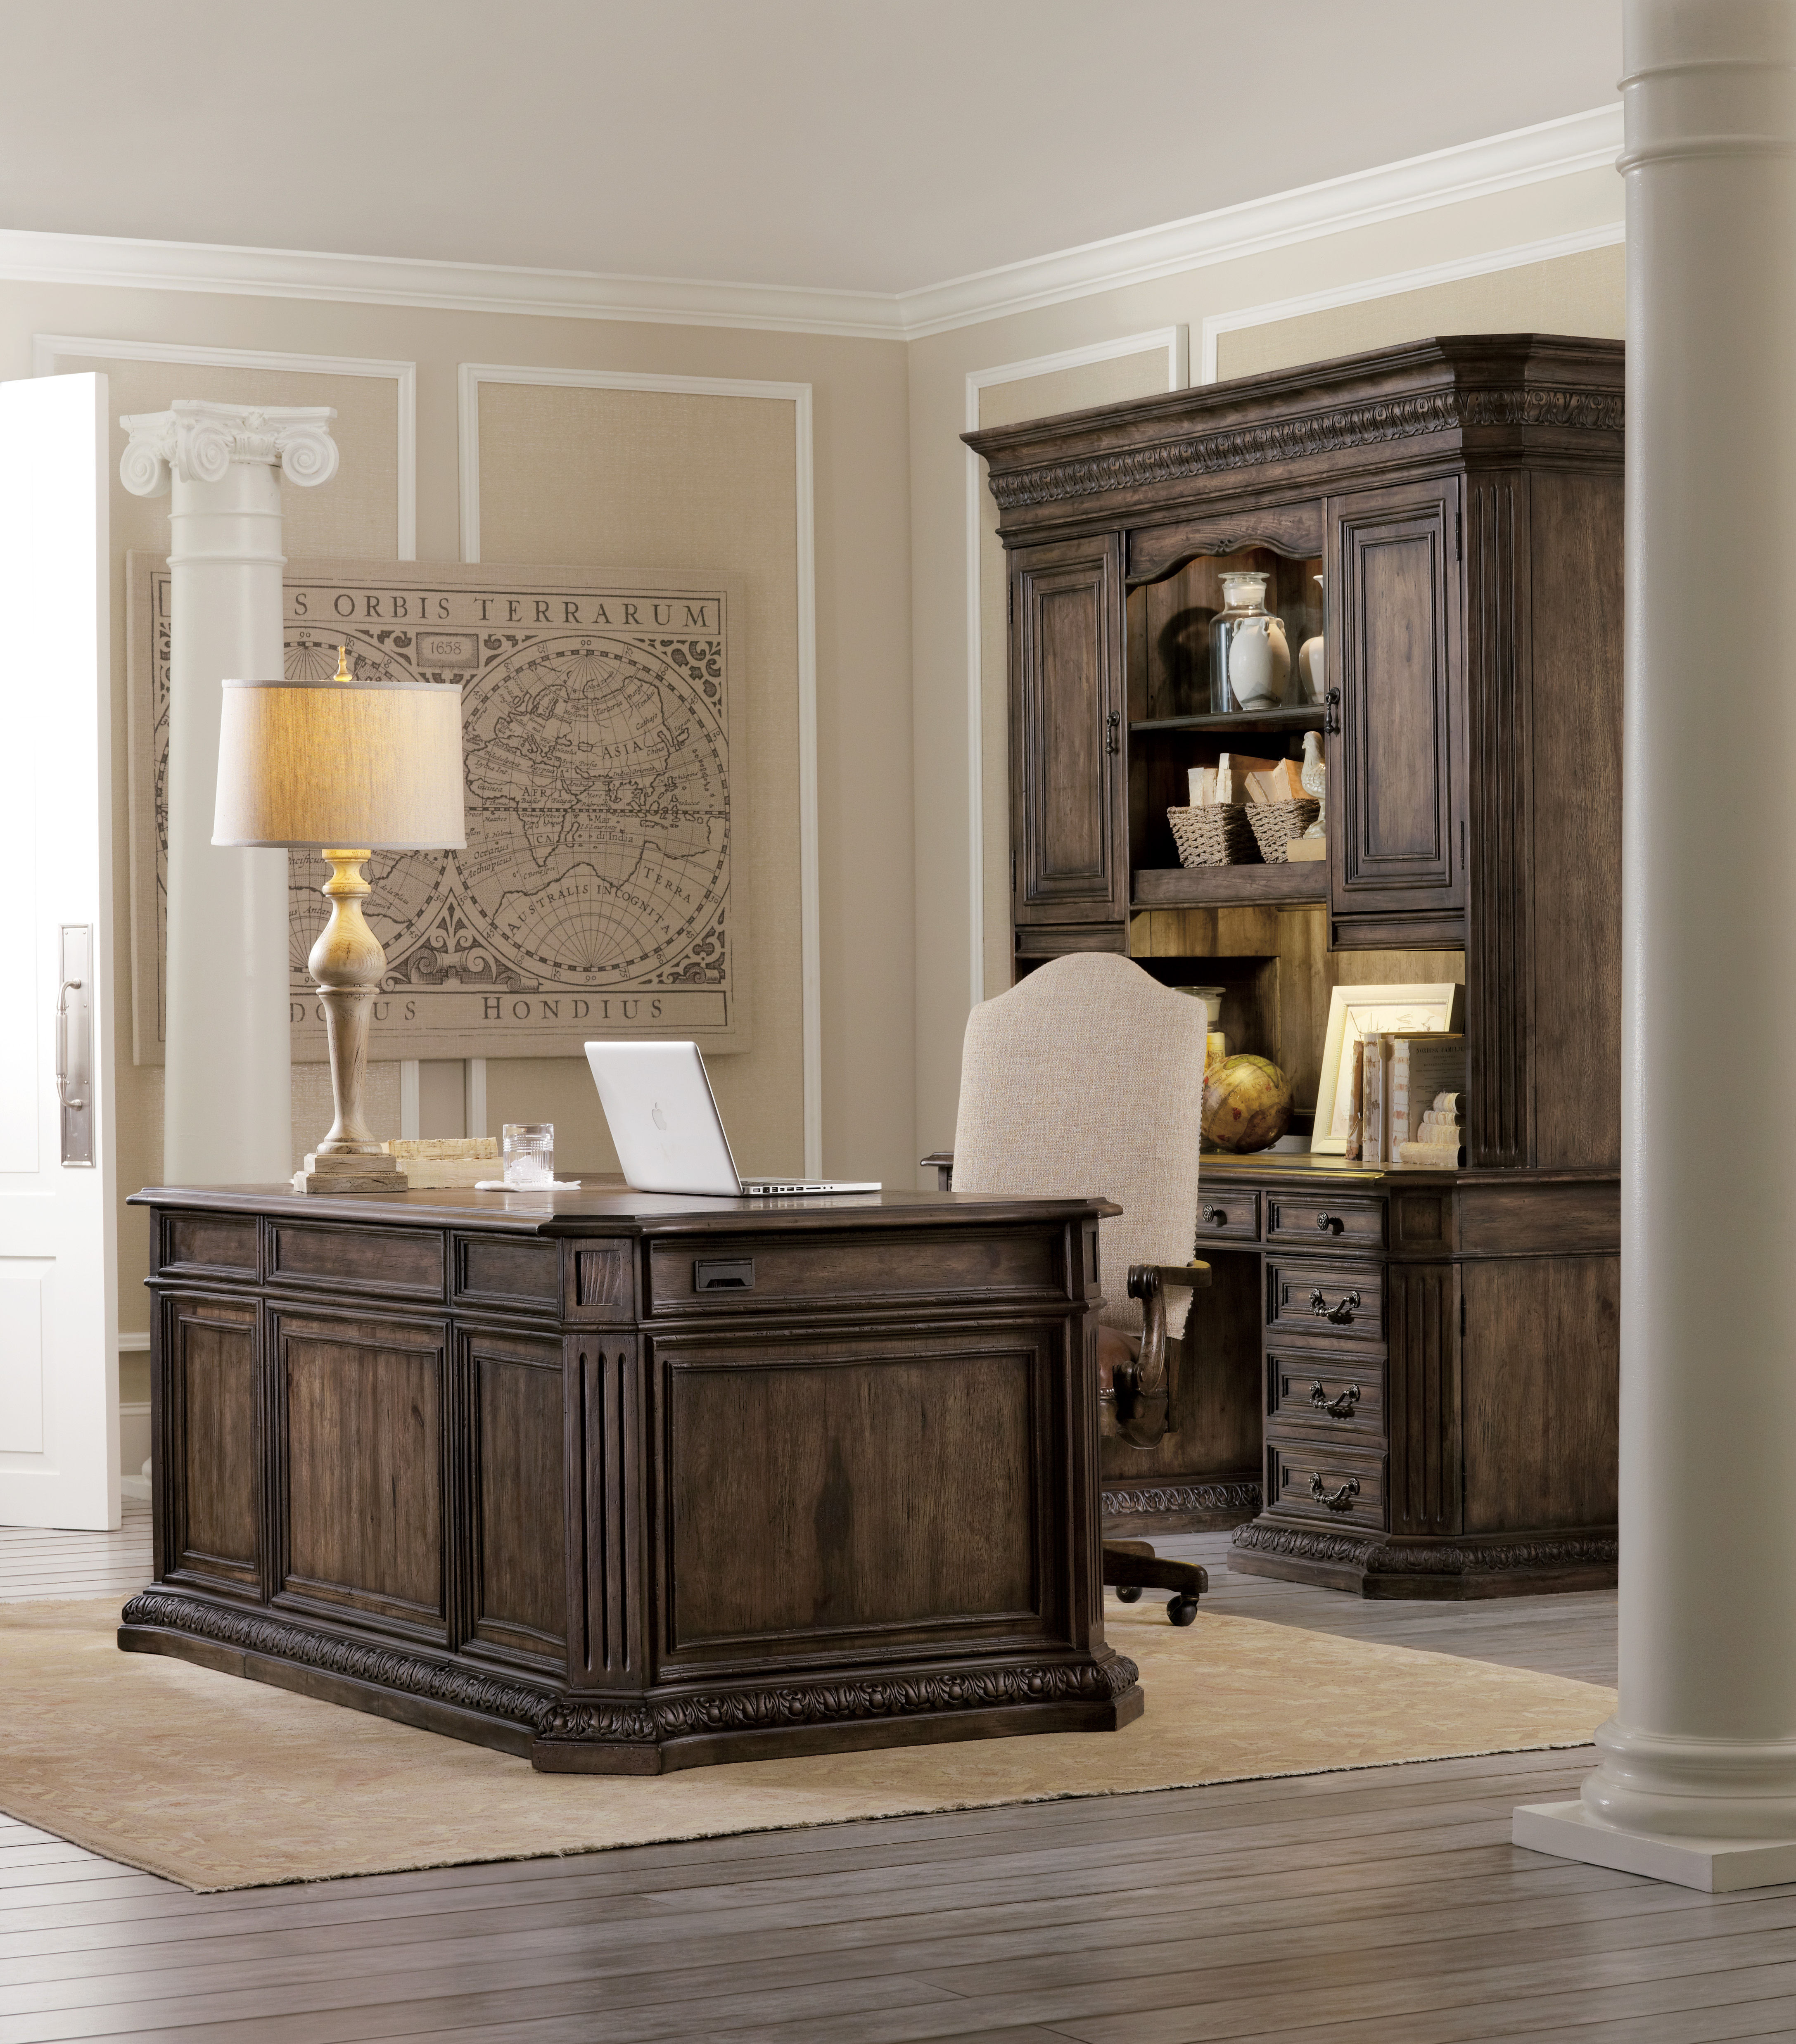 Best ideas about Hooker Office Furniture . Save or Pin Hooker Furniture Home fice Rhapsody puter Credenza Now.